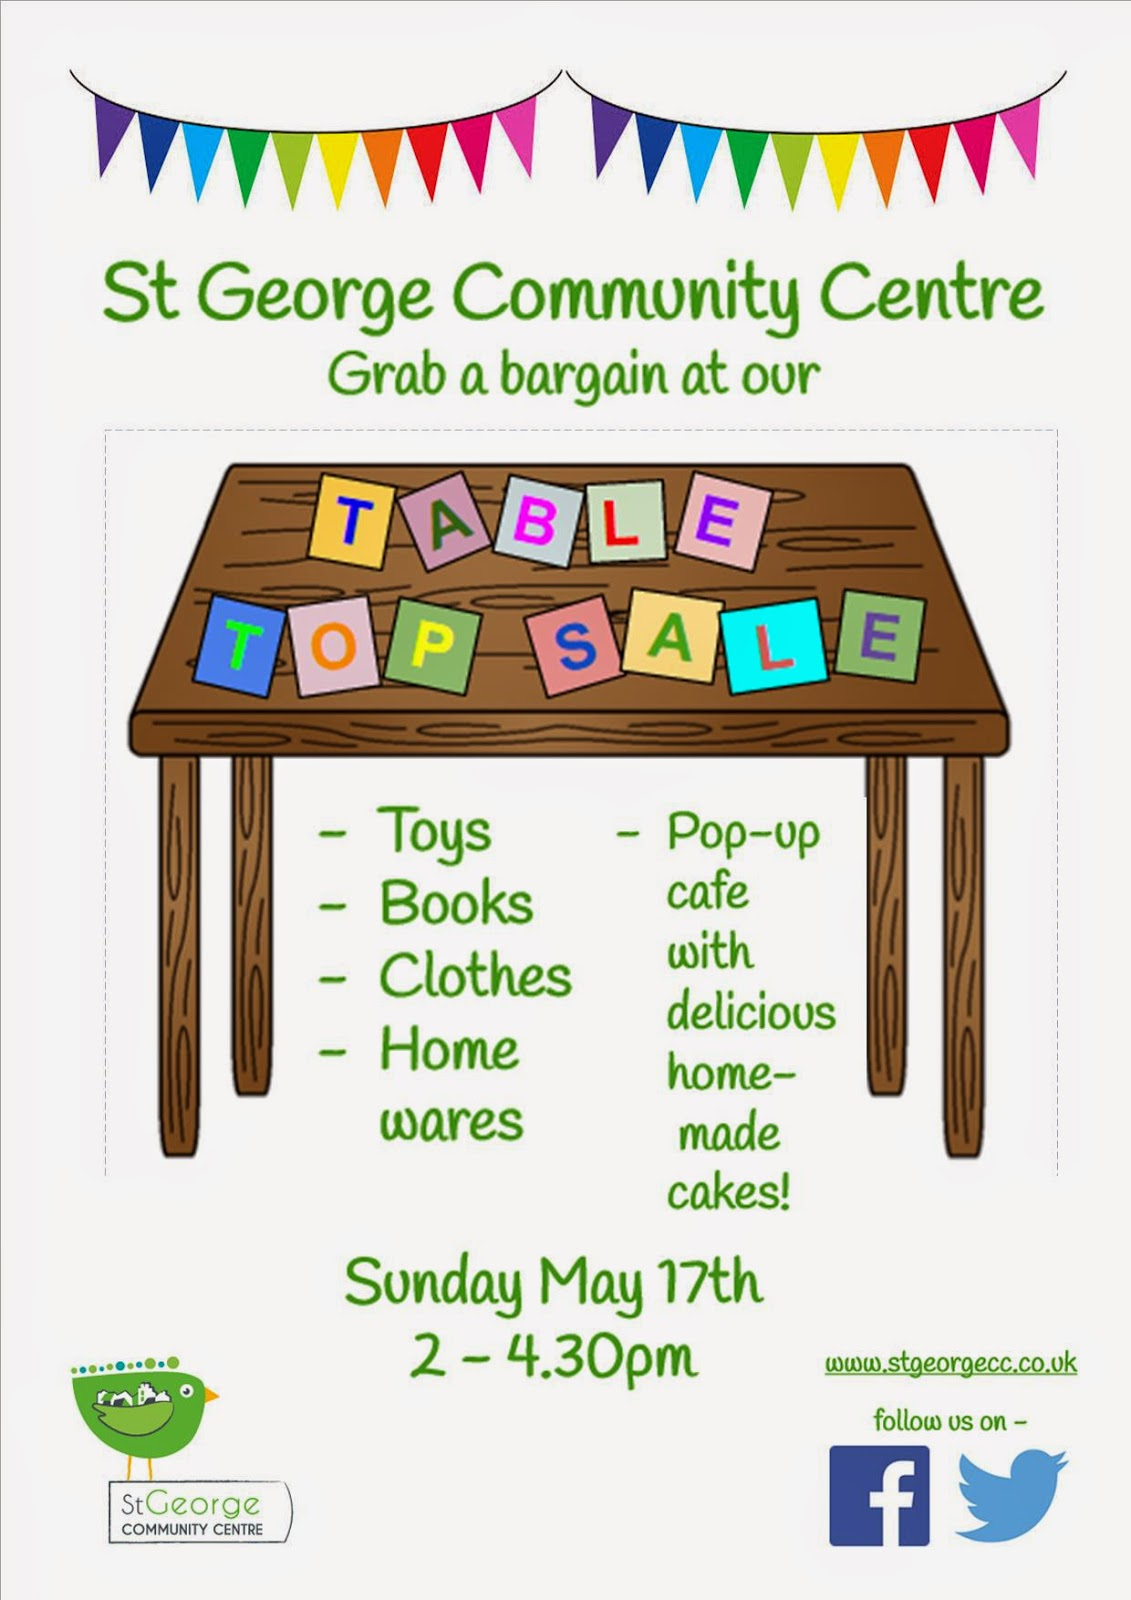 St George Community Centre: Table Top Sale - 17 May 2015